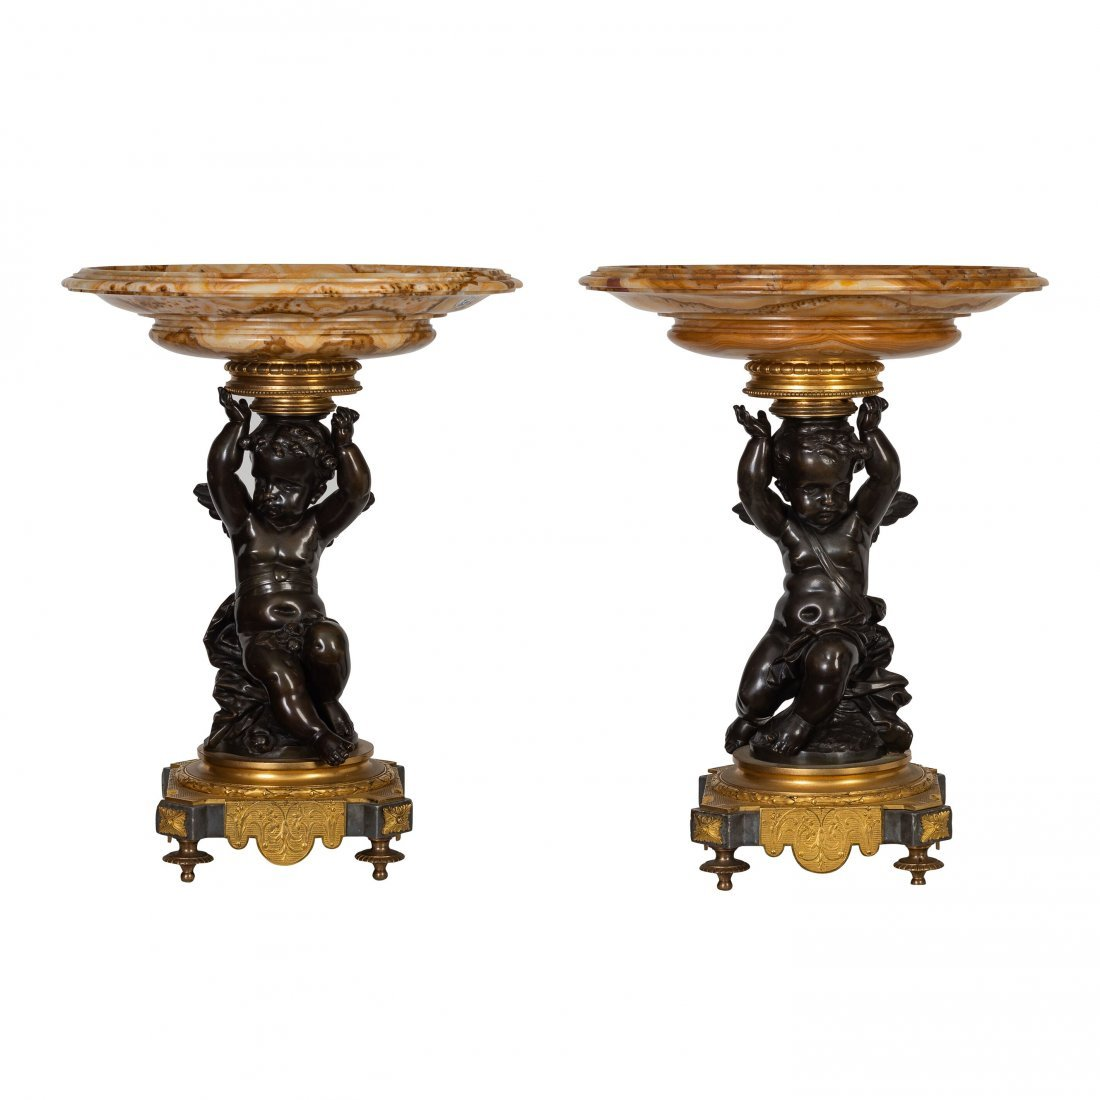 Pair of French Ormolu, Patinated Bronze Marble Tazze